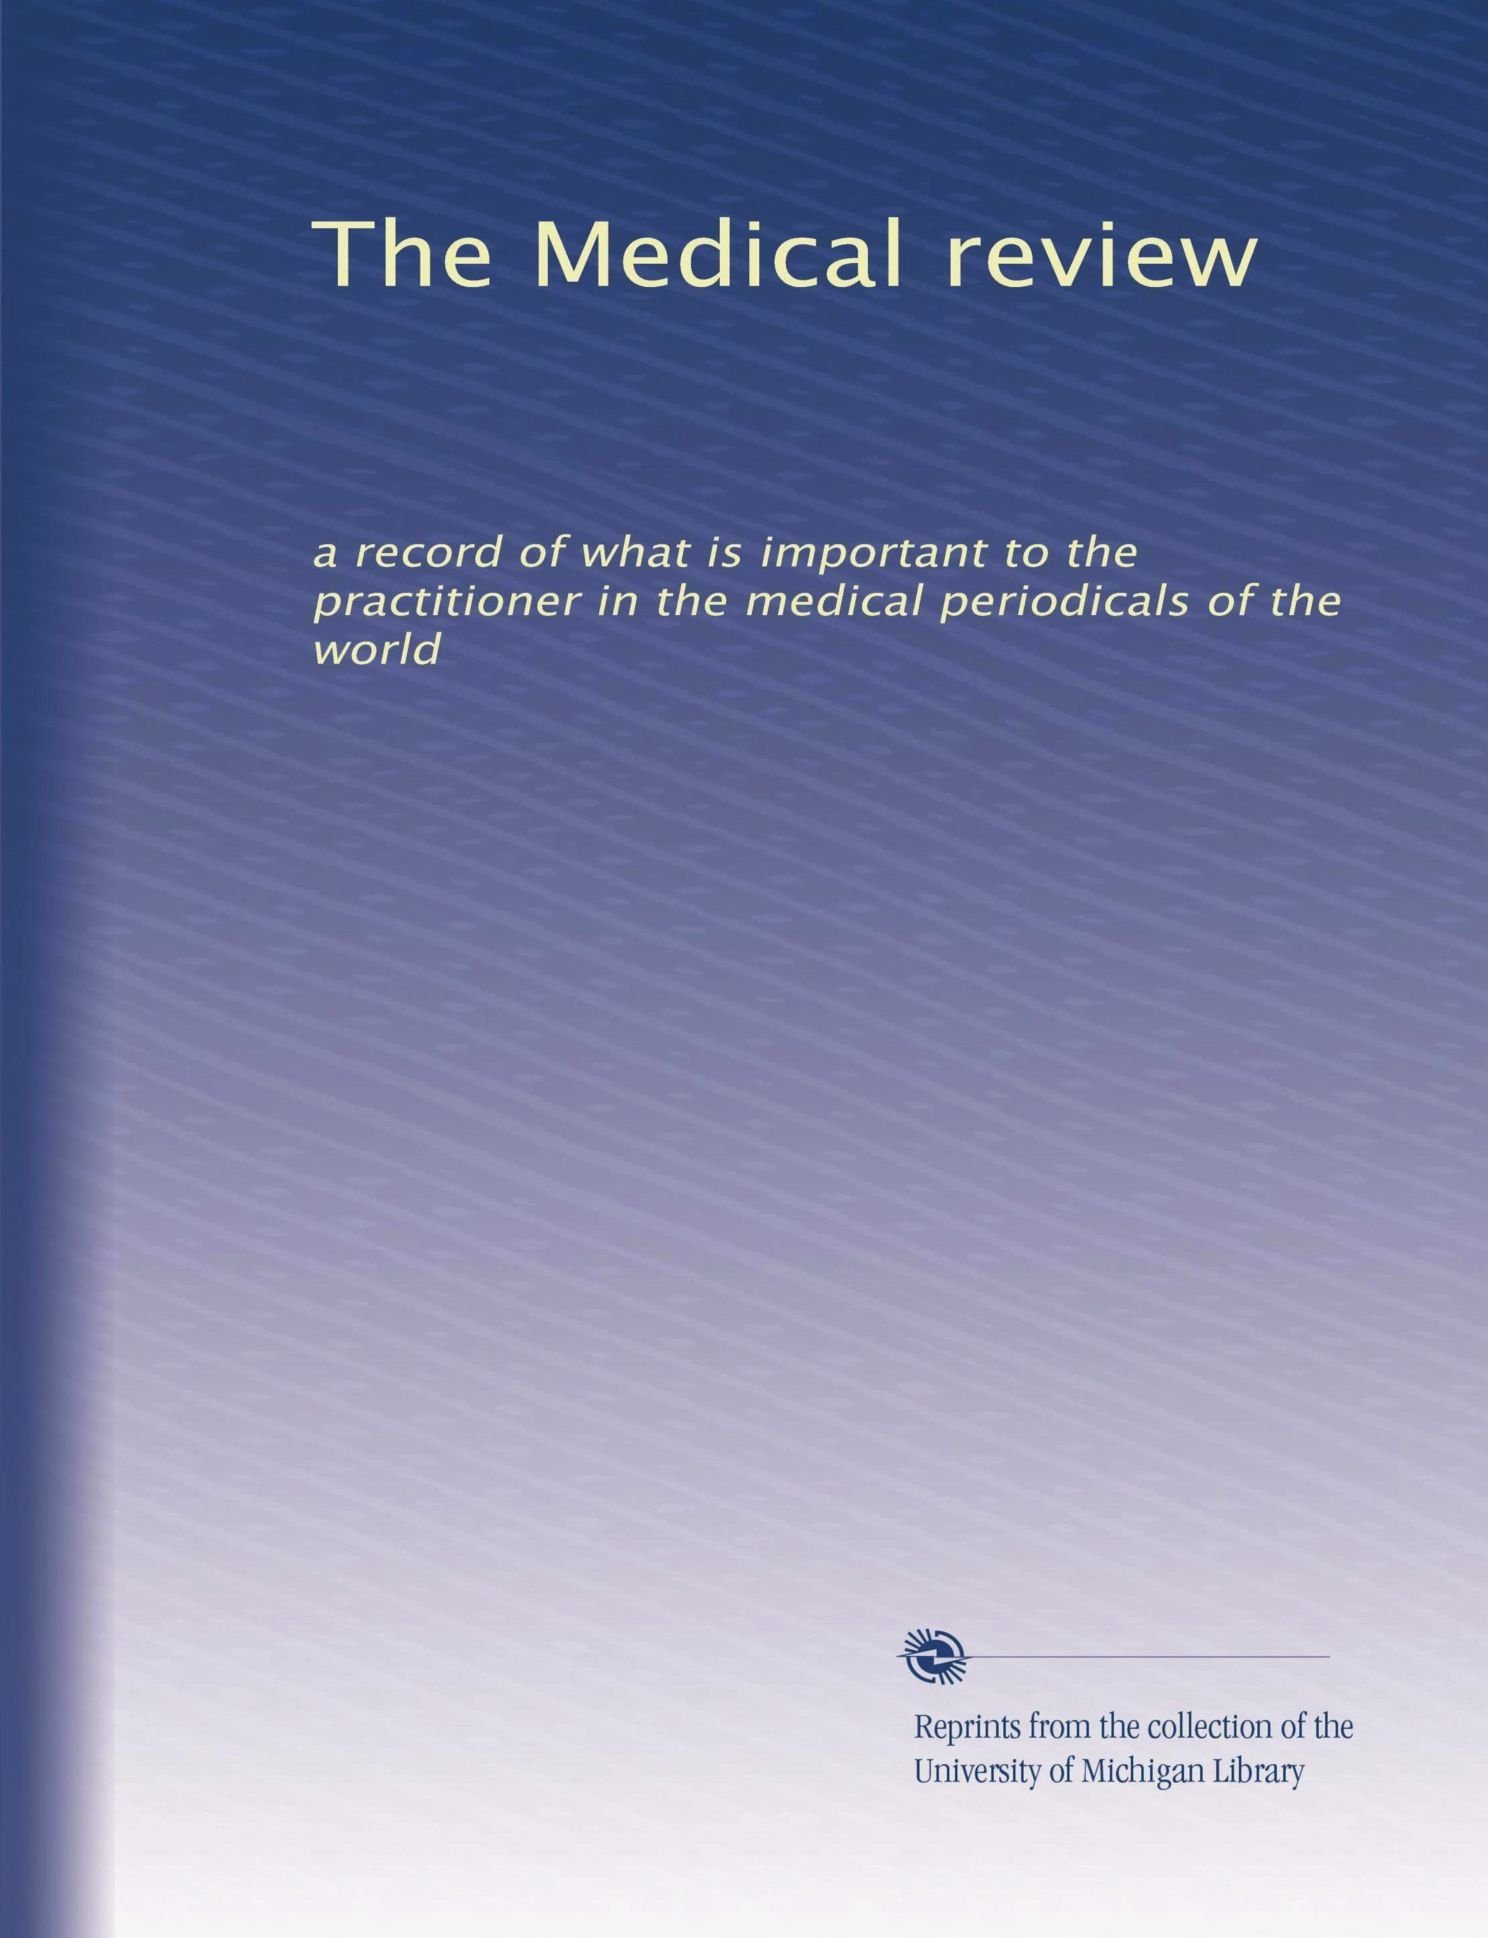 Download The Medical review: a record of what is important to the practitioner in the medical periodicals of the world (Volume 7) pdf